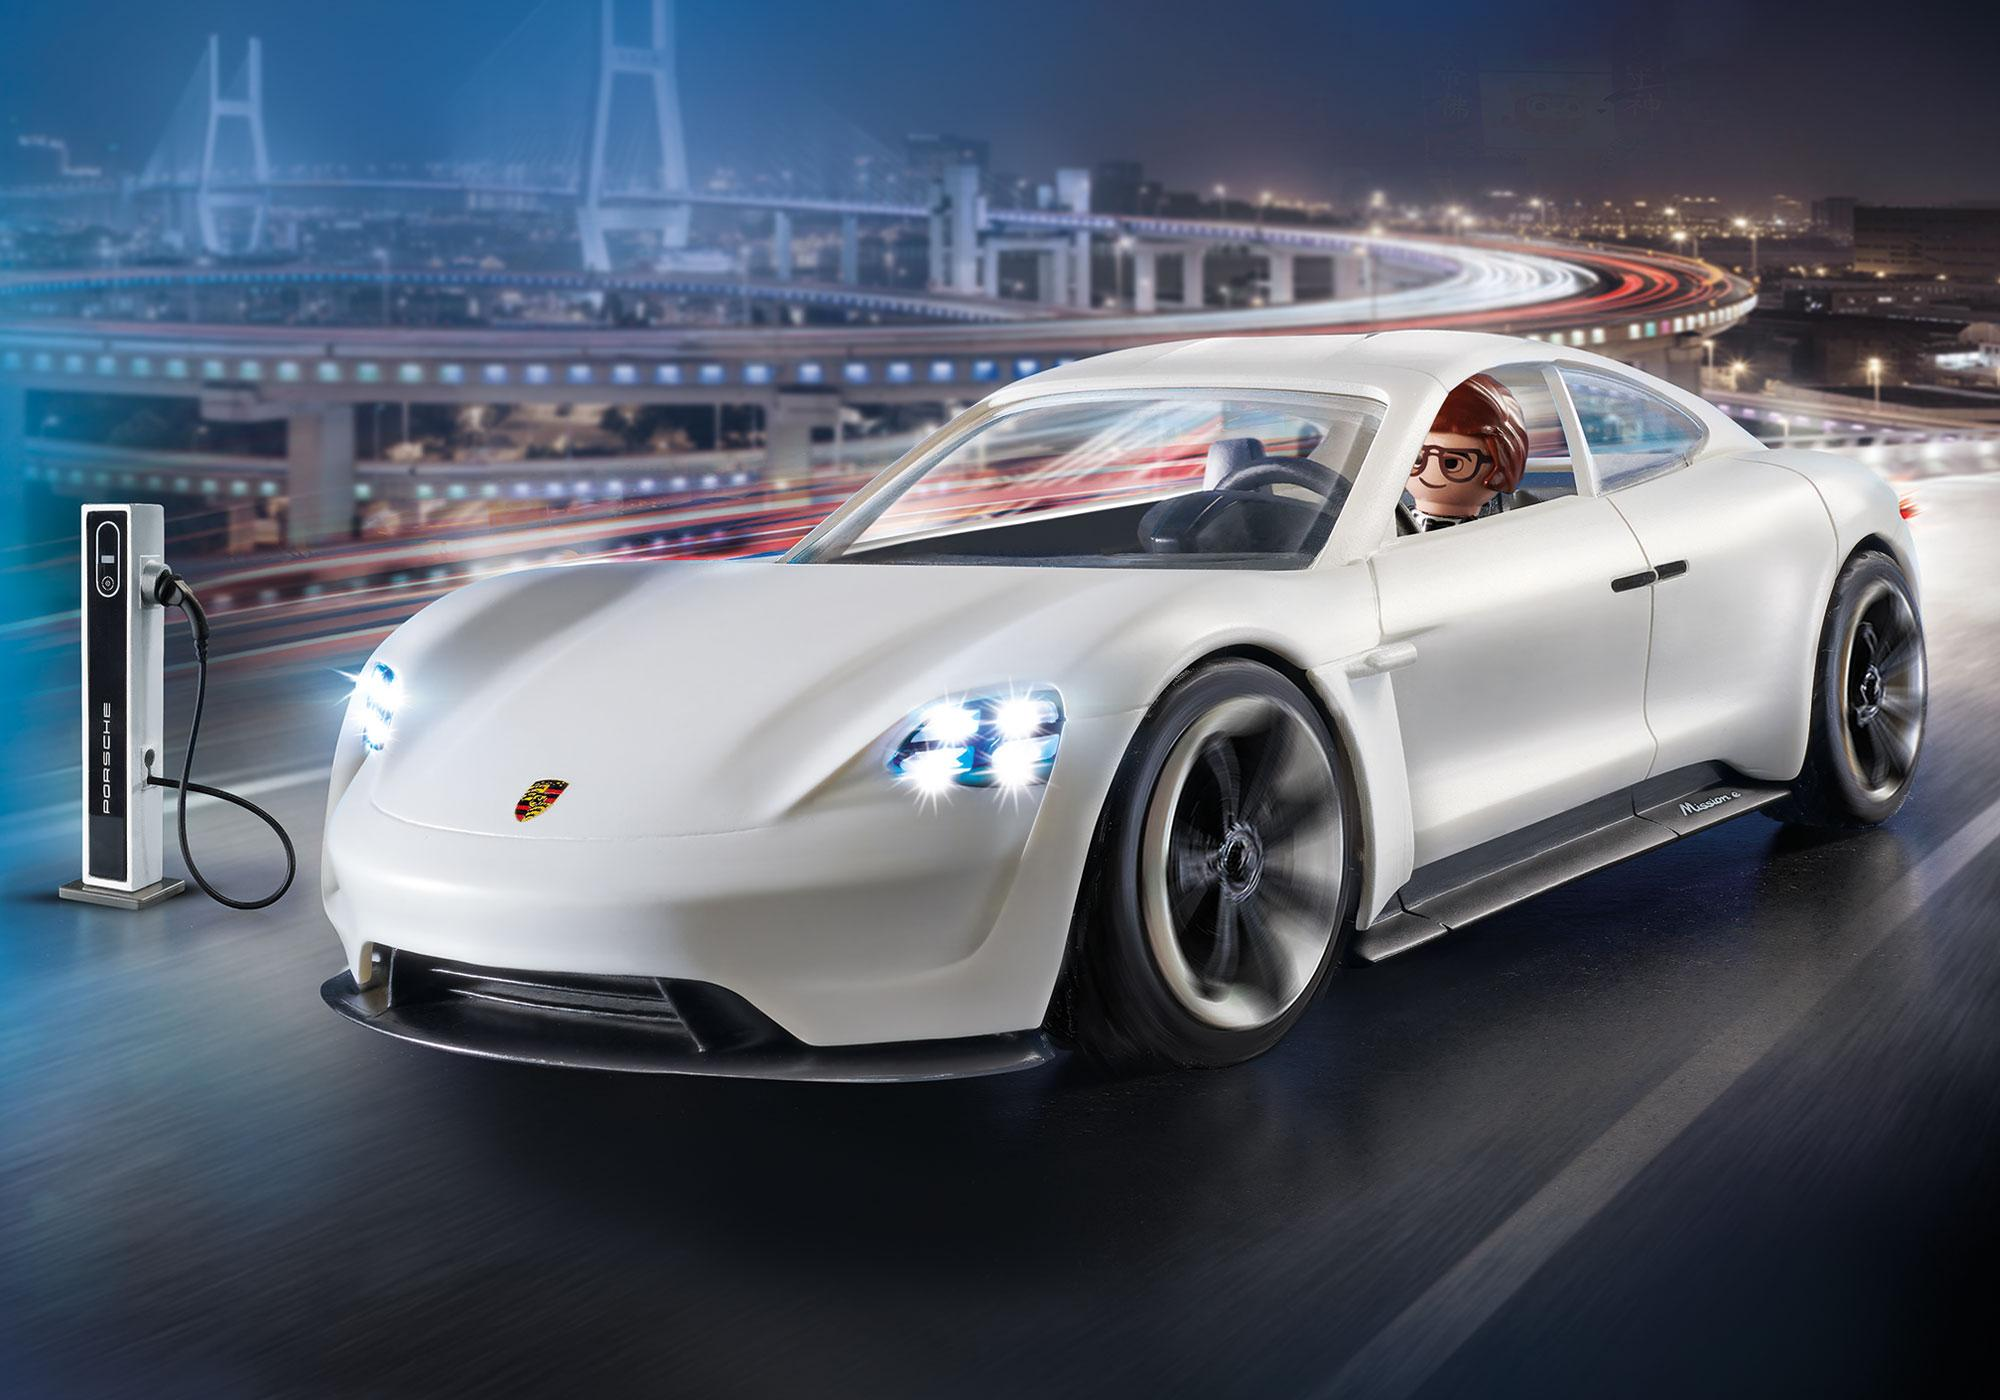 70078_product_detail/PLAYMOBIL: THE MOVIE Rex Dasher's Porsche Mission E